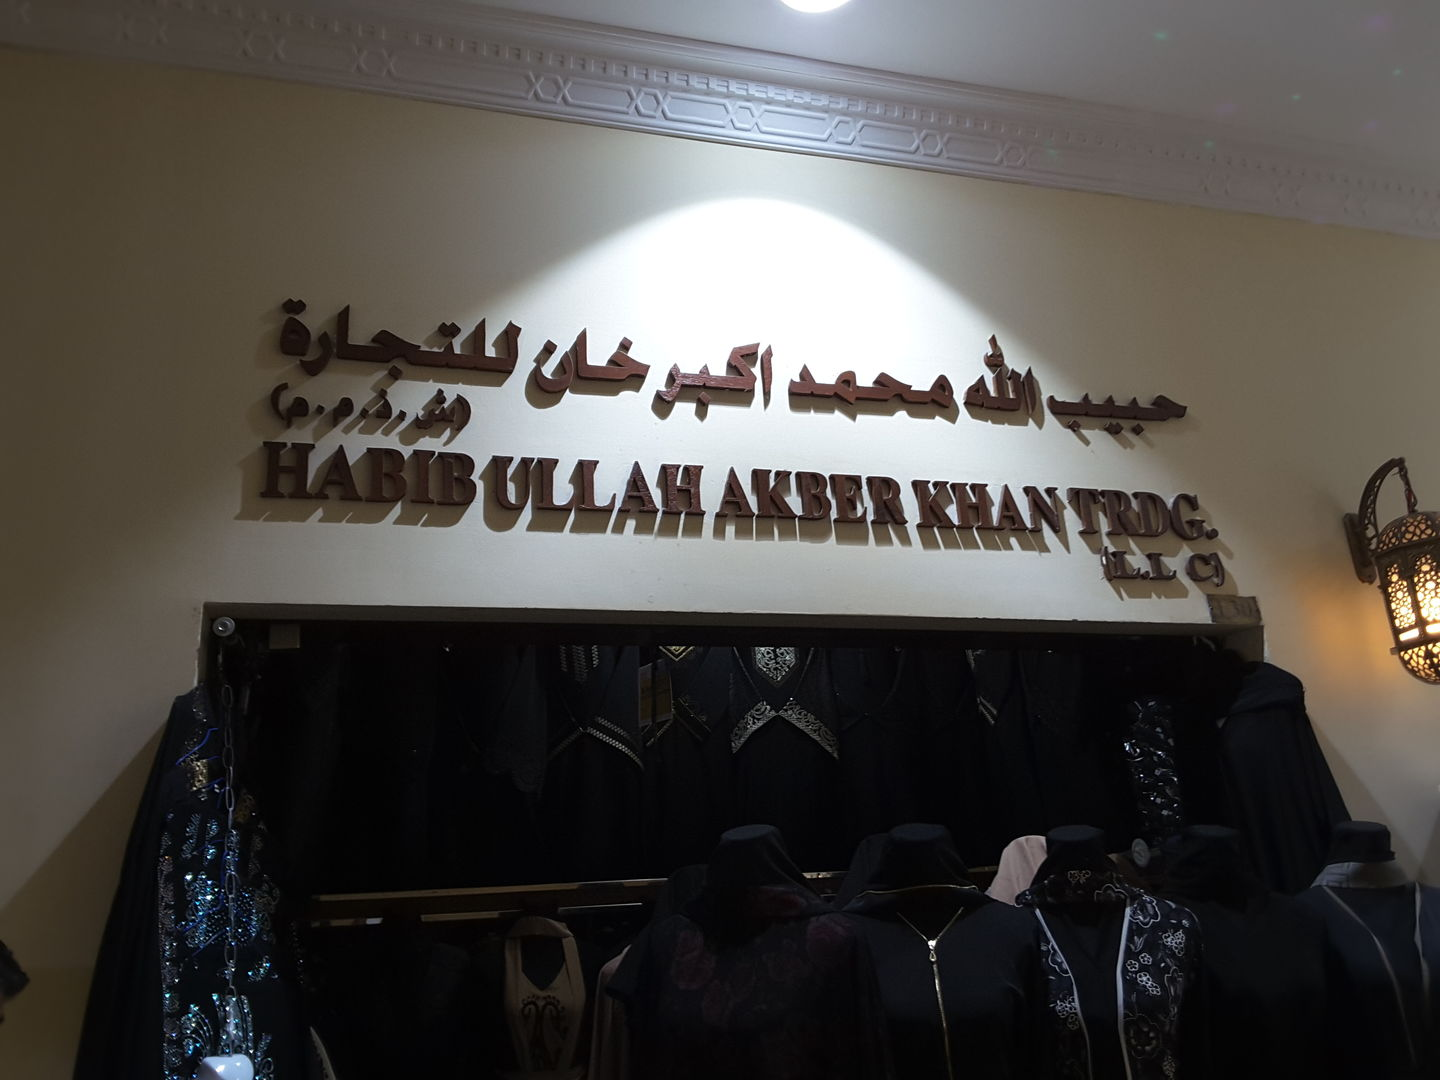 HiDubai-business-habib-ullah-muhammad-akber-khan-shopping-apparel-naif-dubai-2